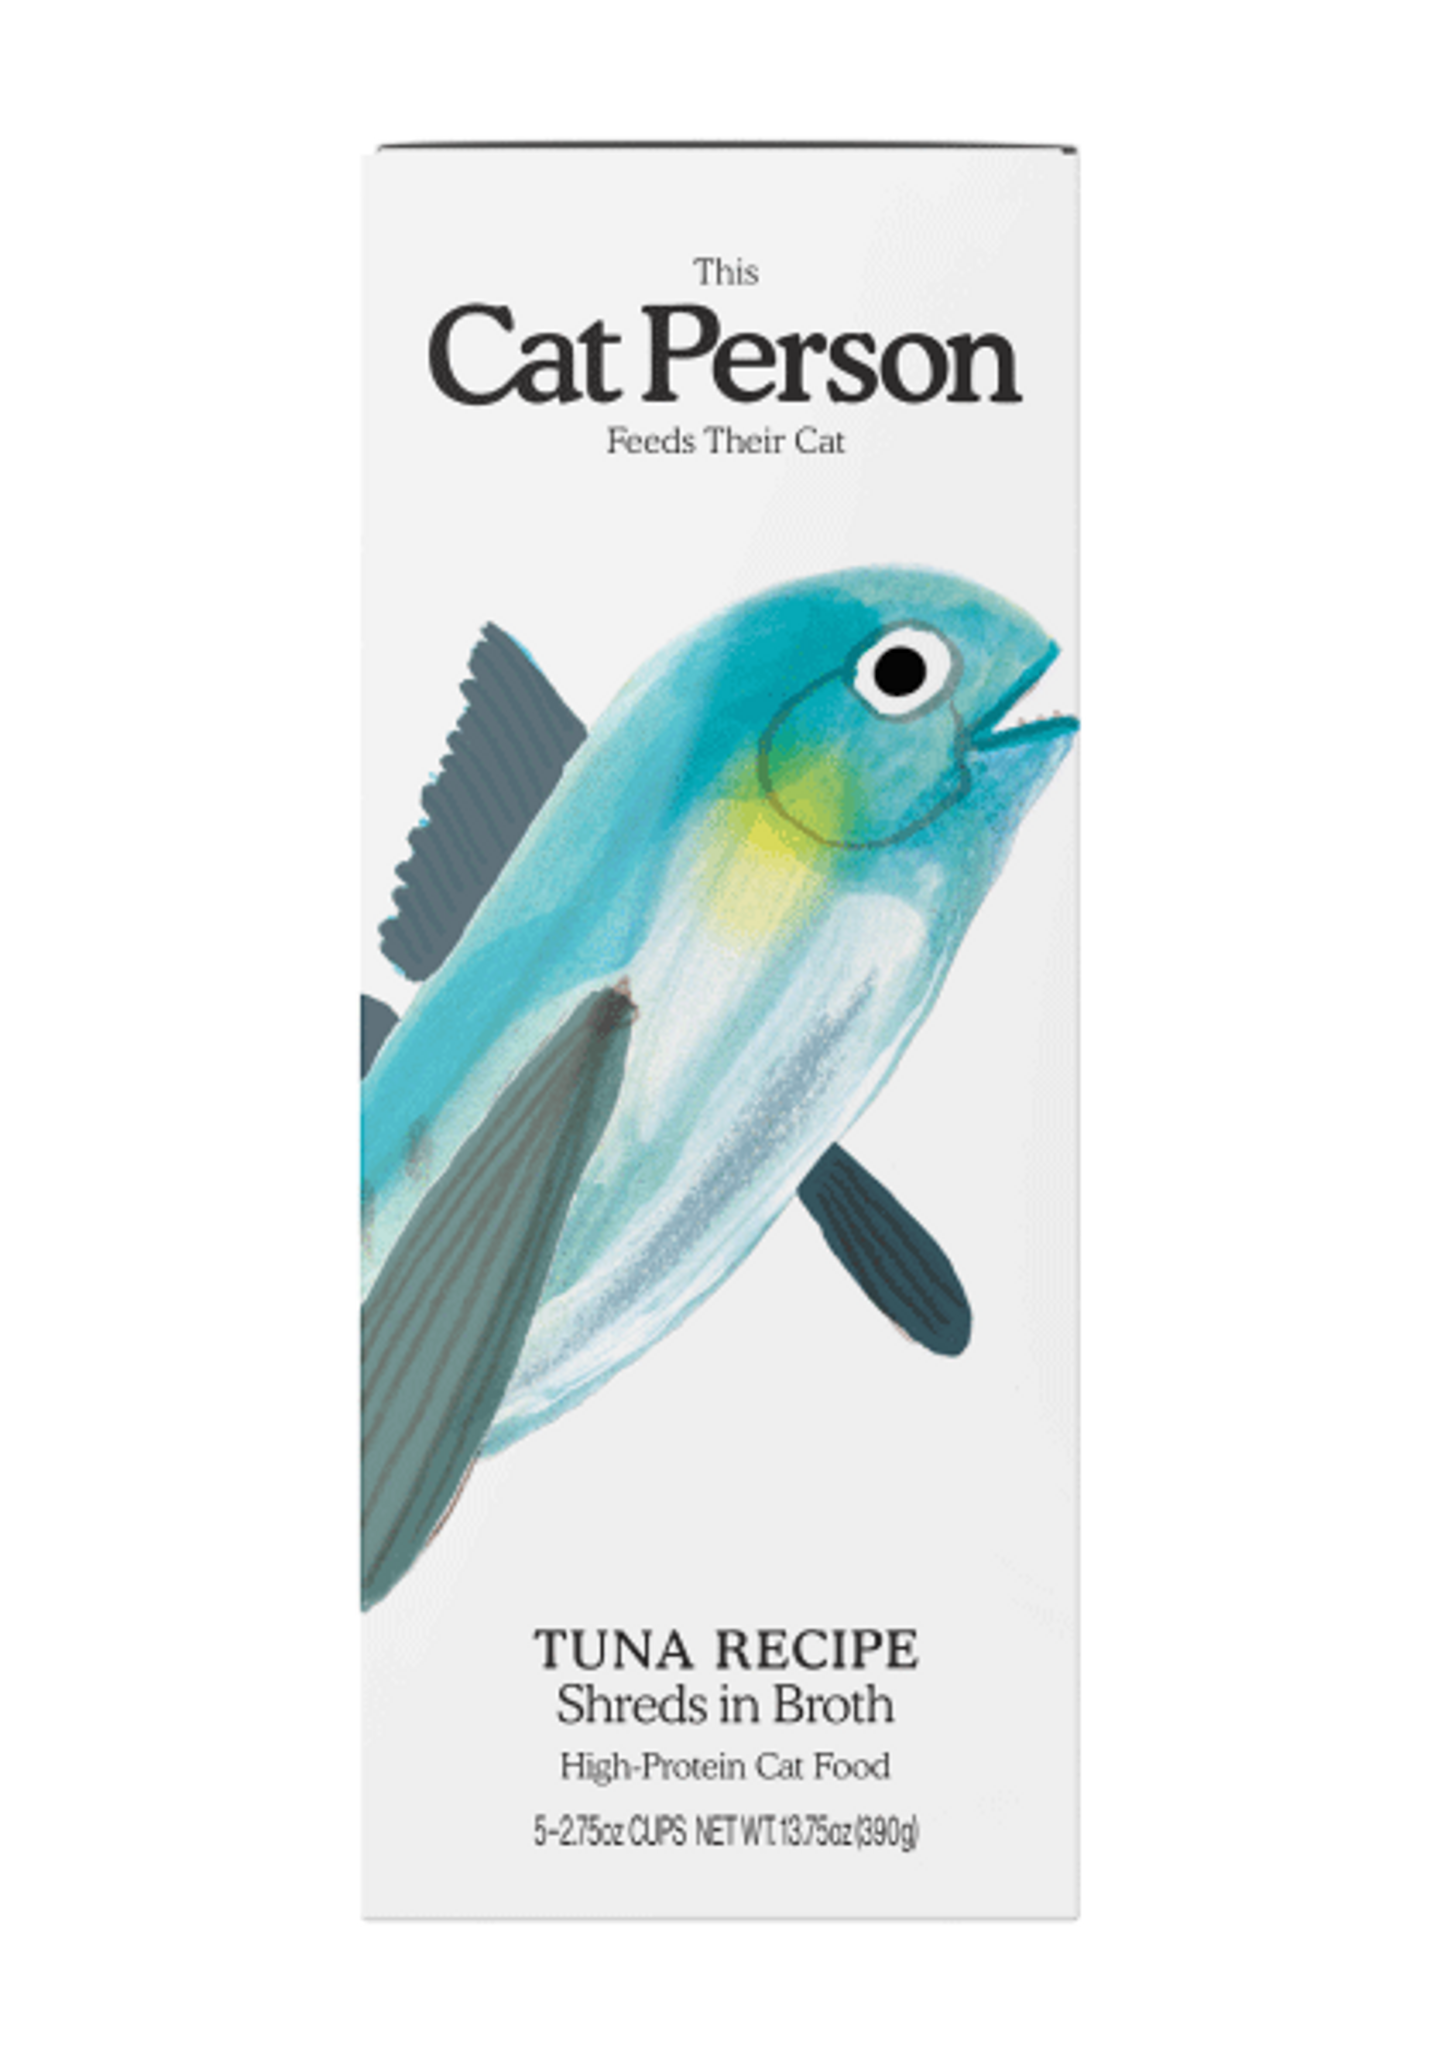 Sleeve of Cat Person tuna shreds in broth wet food